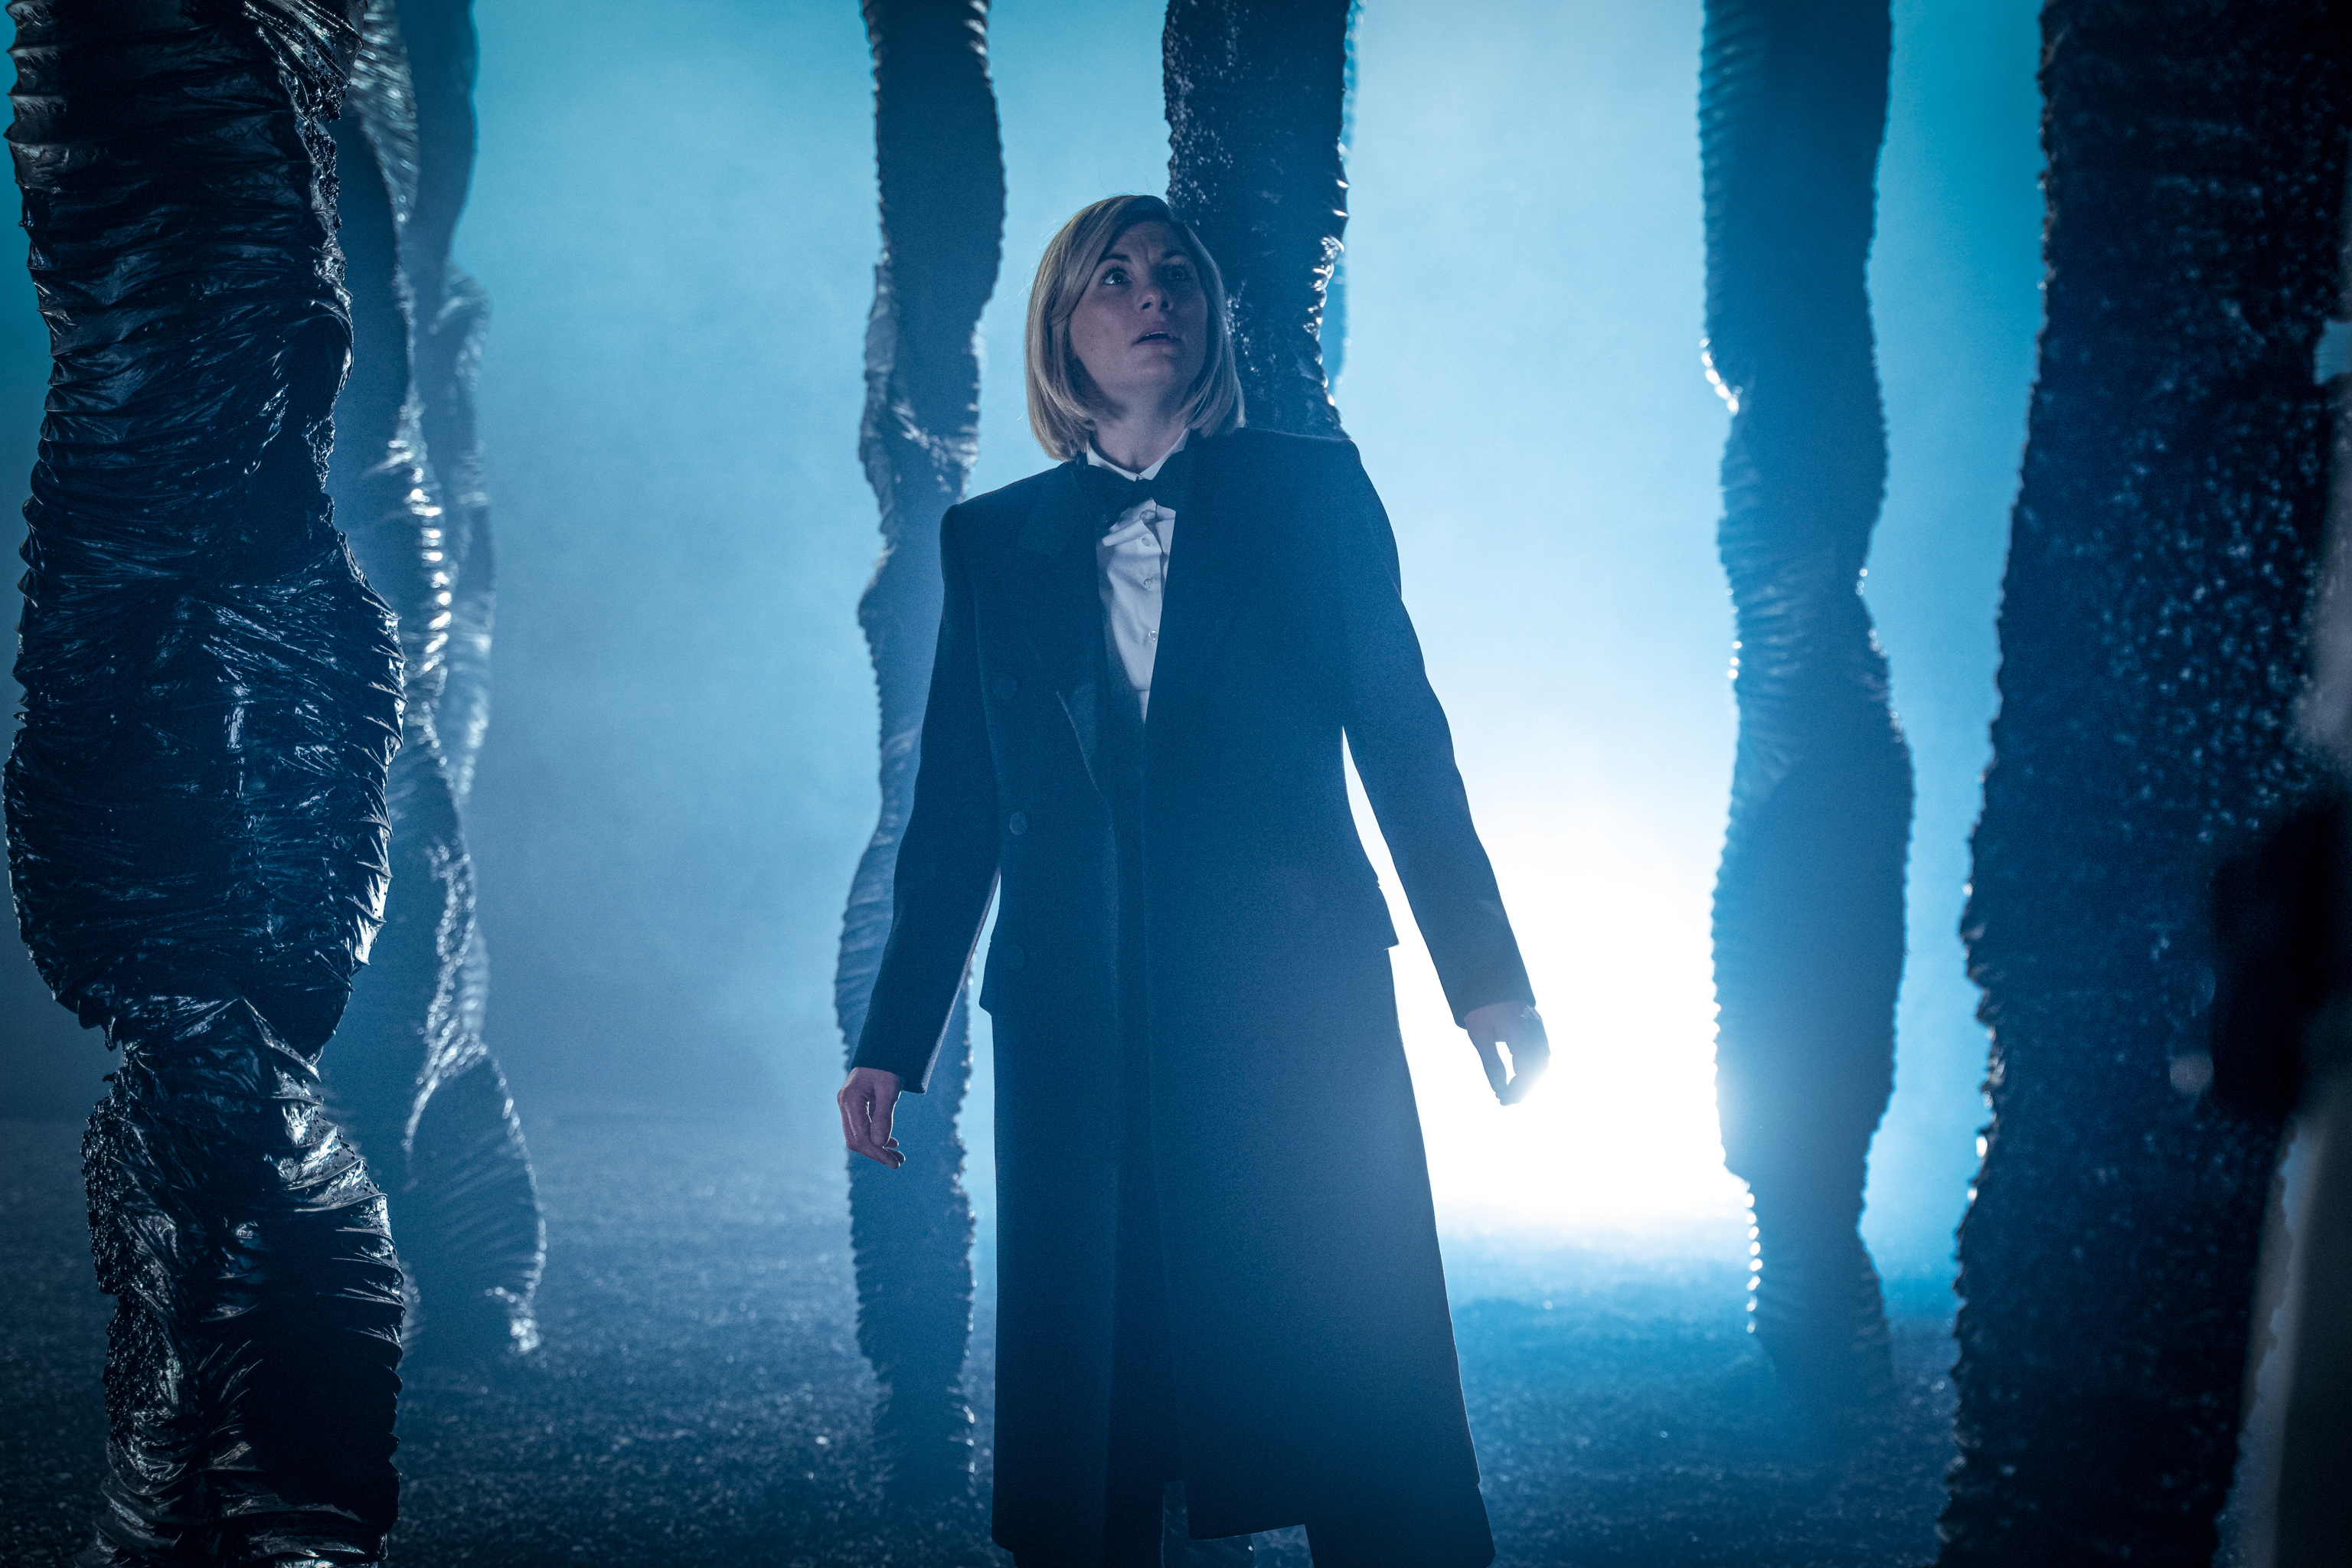 Doctor Who's new season is a radical step back in the right direction